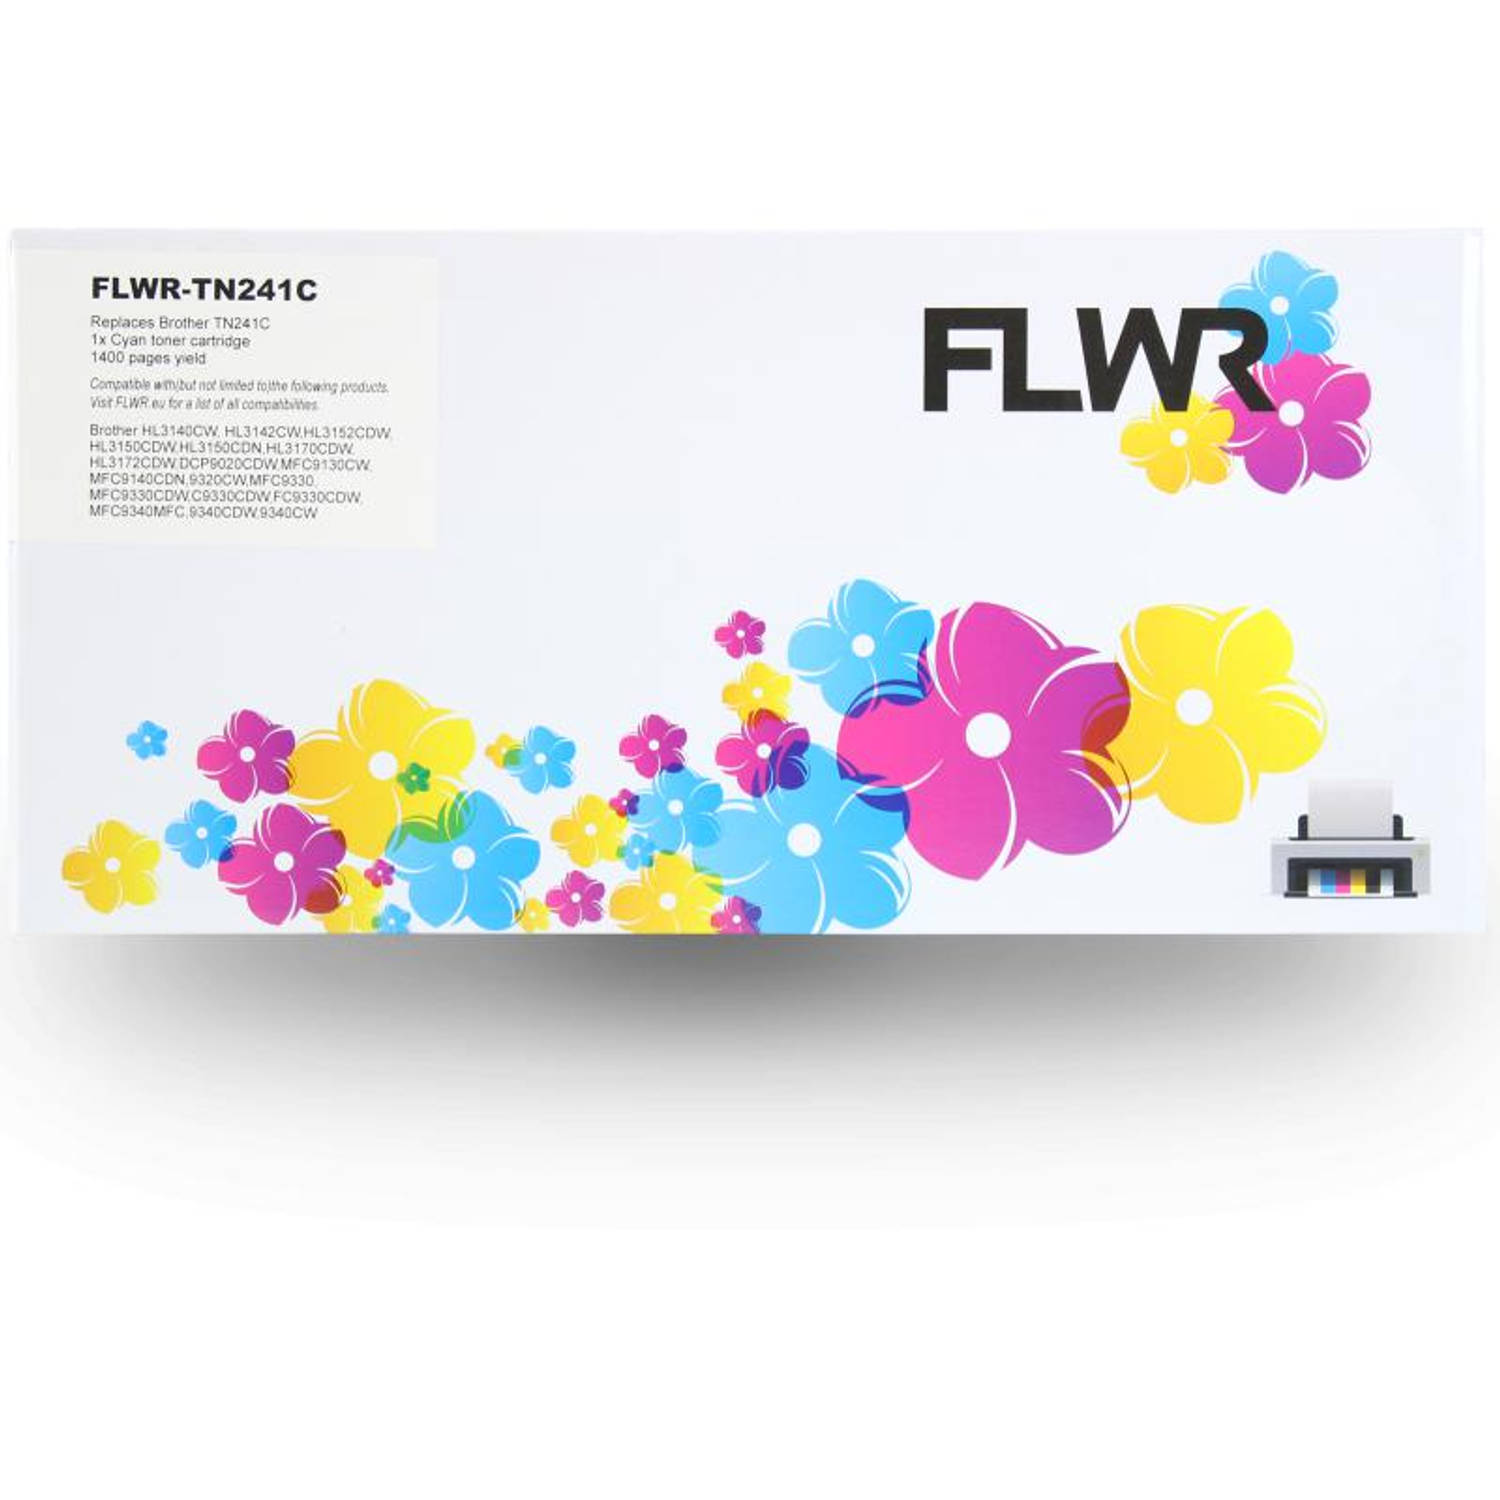 FLWR Brother TN-245 cyaan Toner